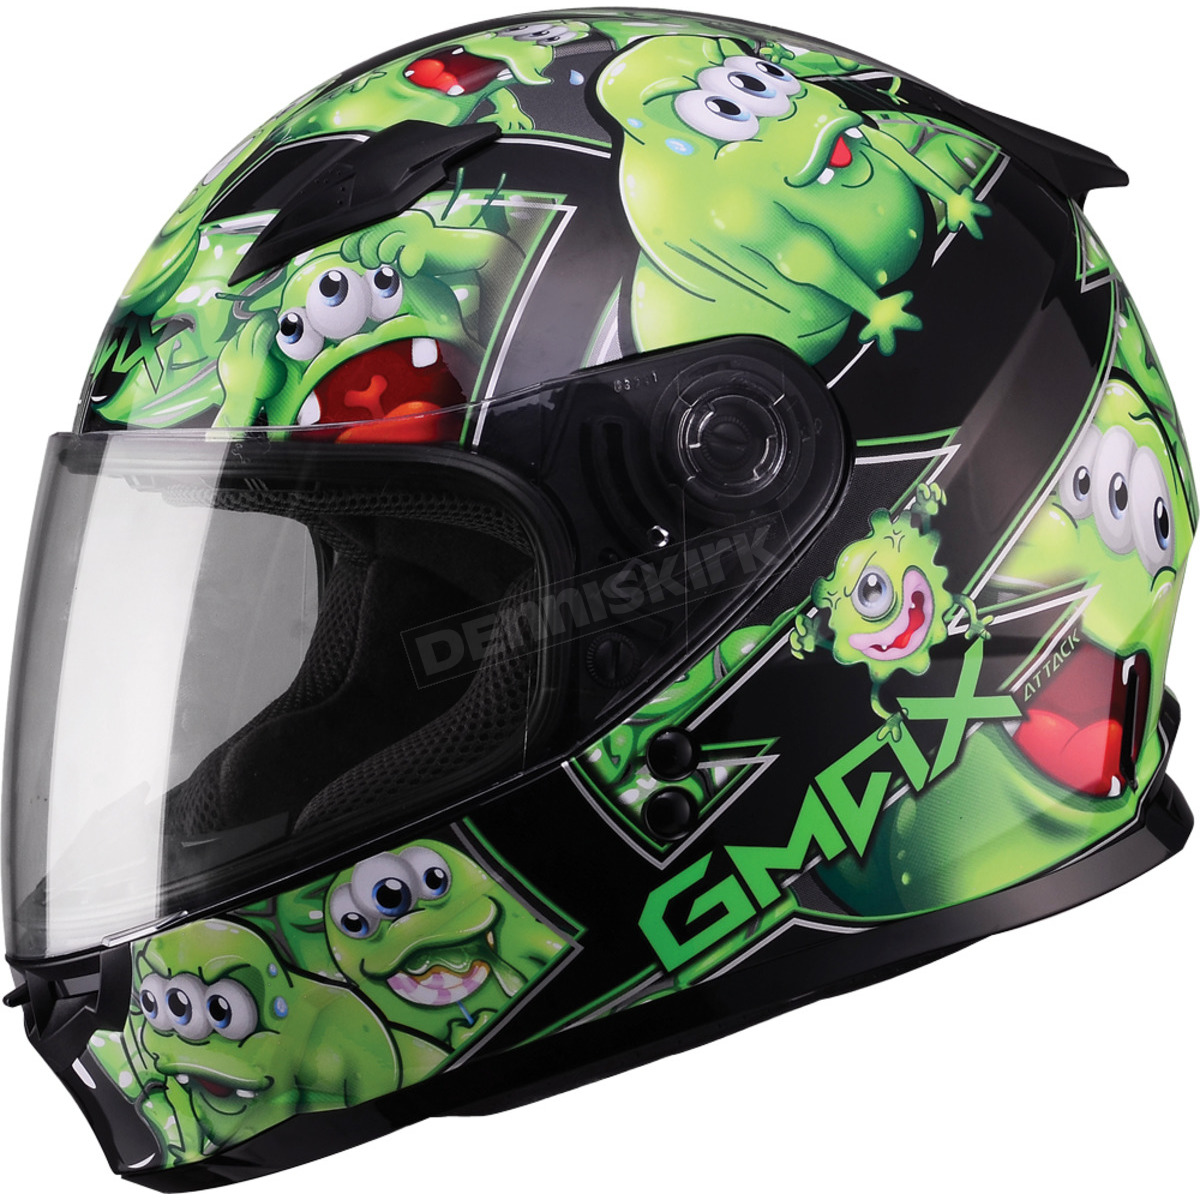 more gmax helmets see more from gmax see more helmets see harley ...